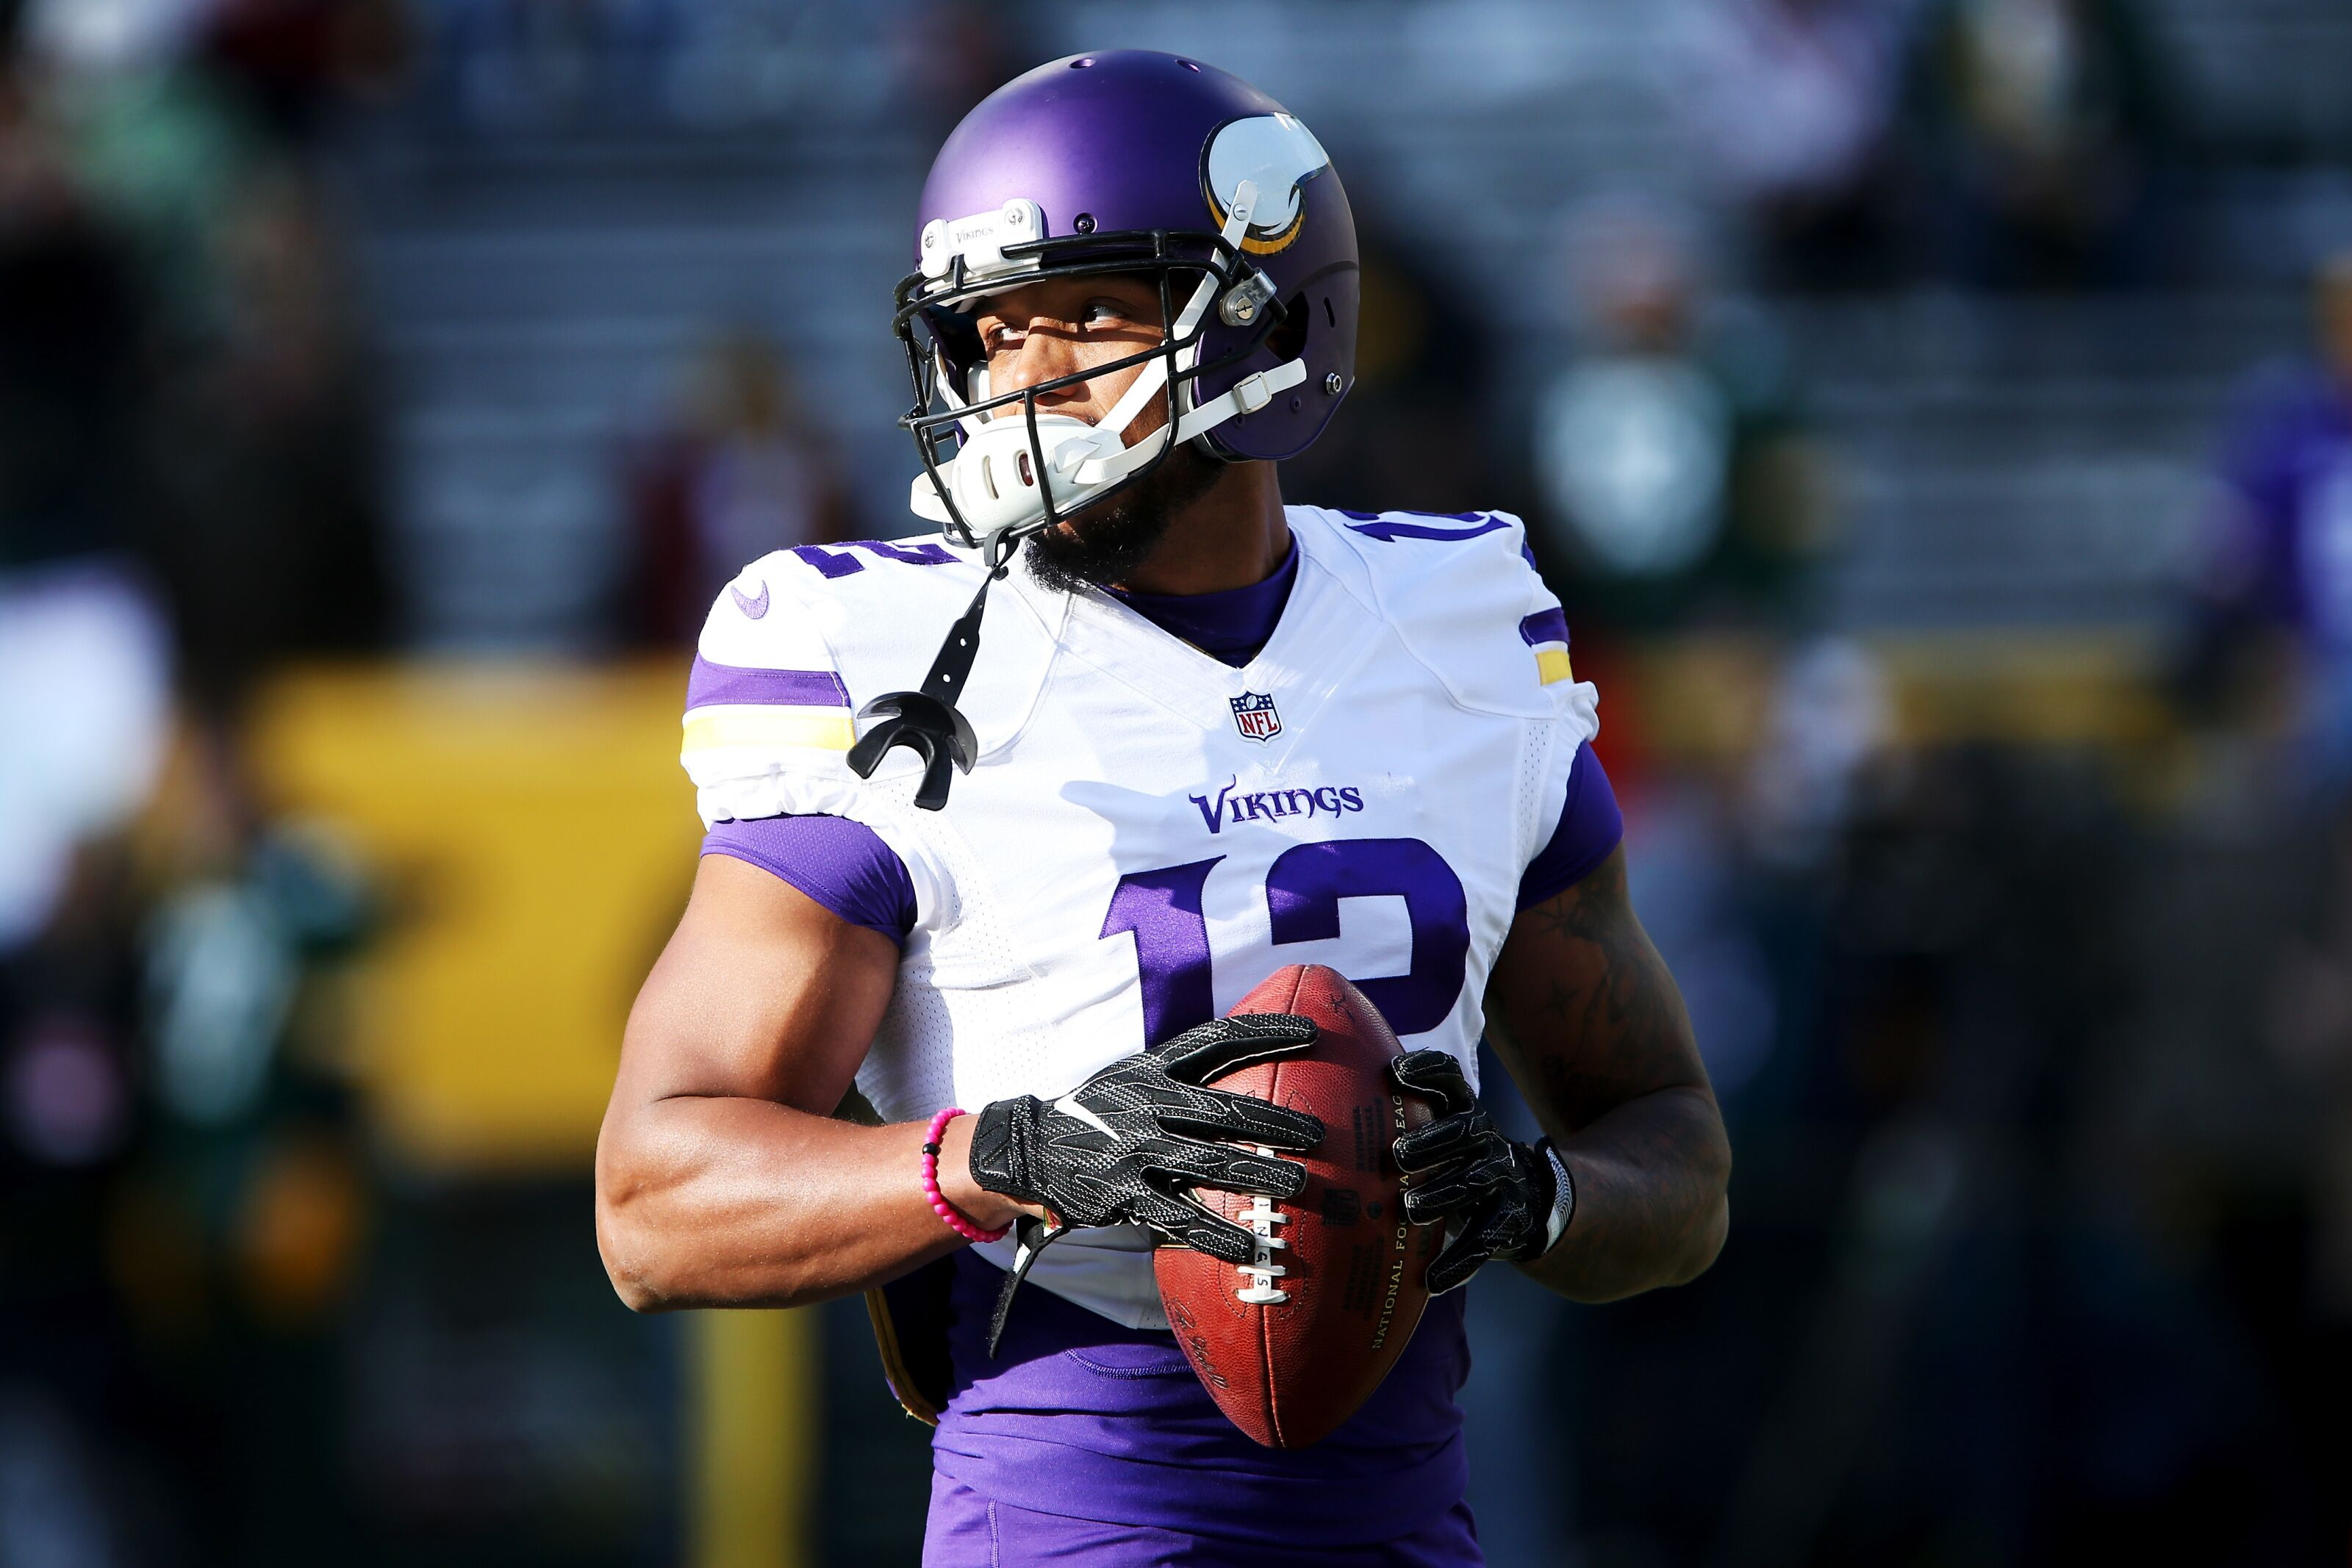 86d0696771a Former Vikings receiver has impressive day in new football league